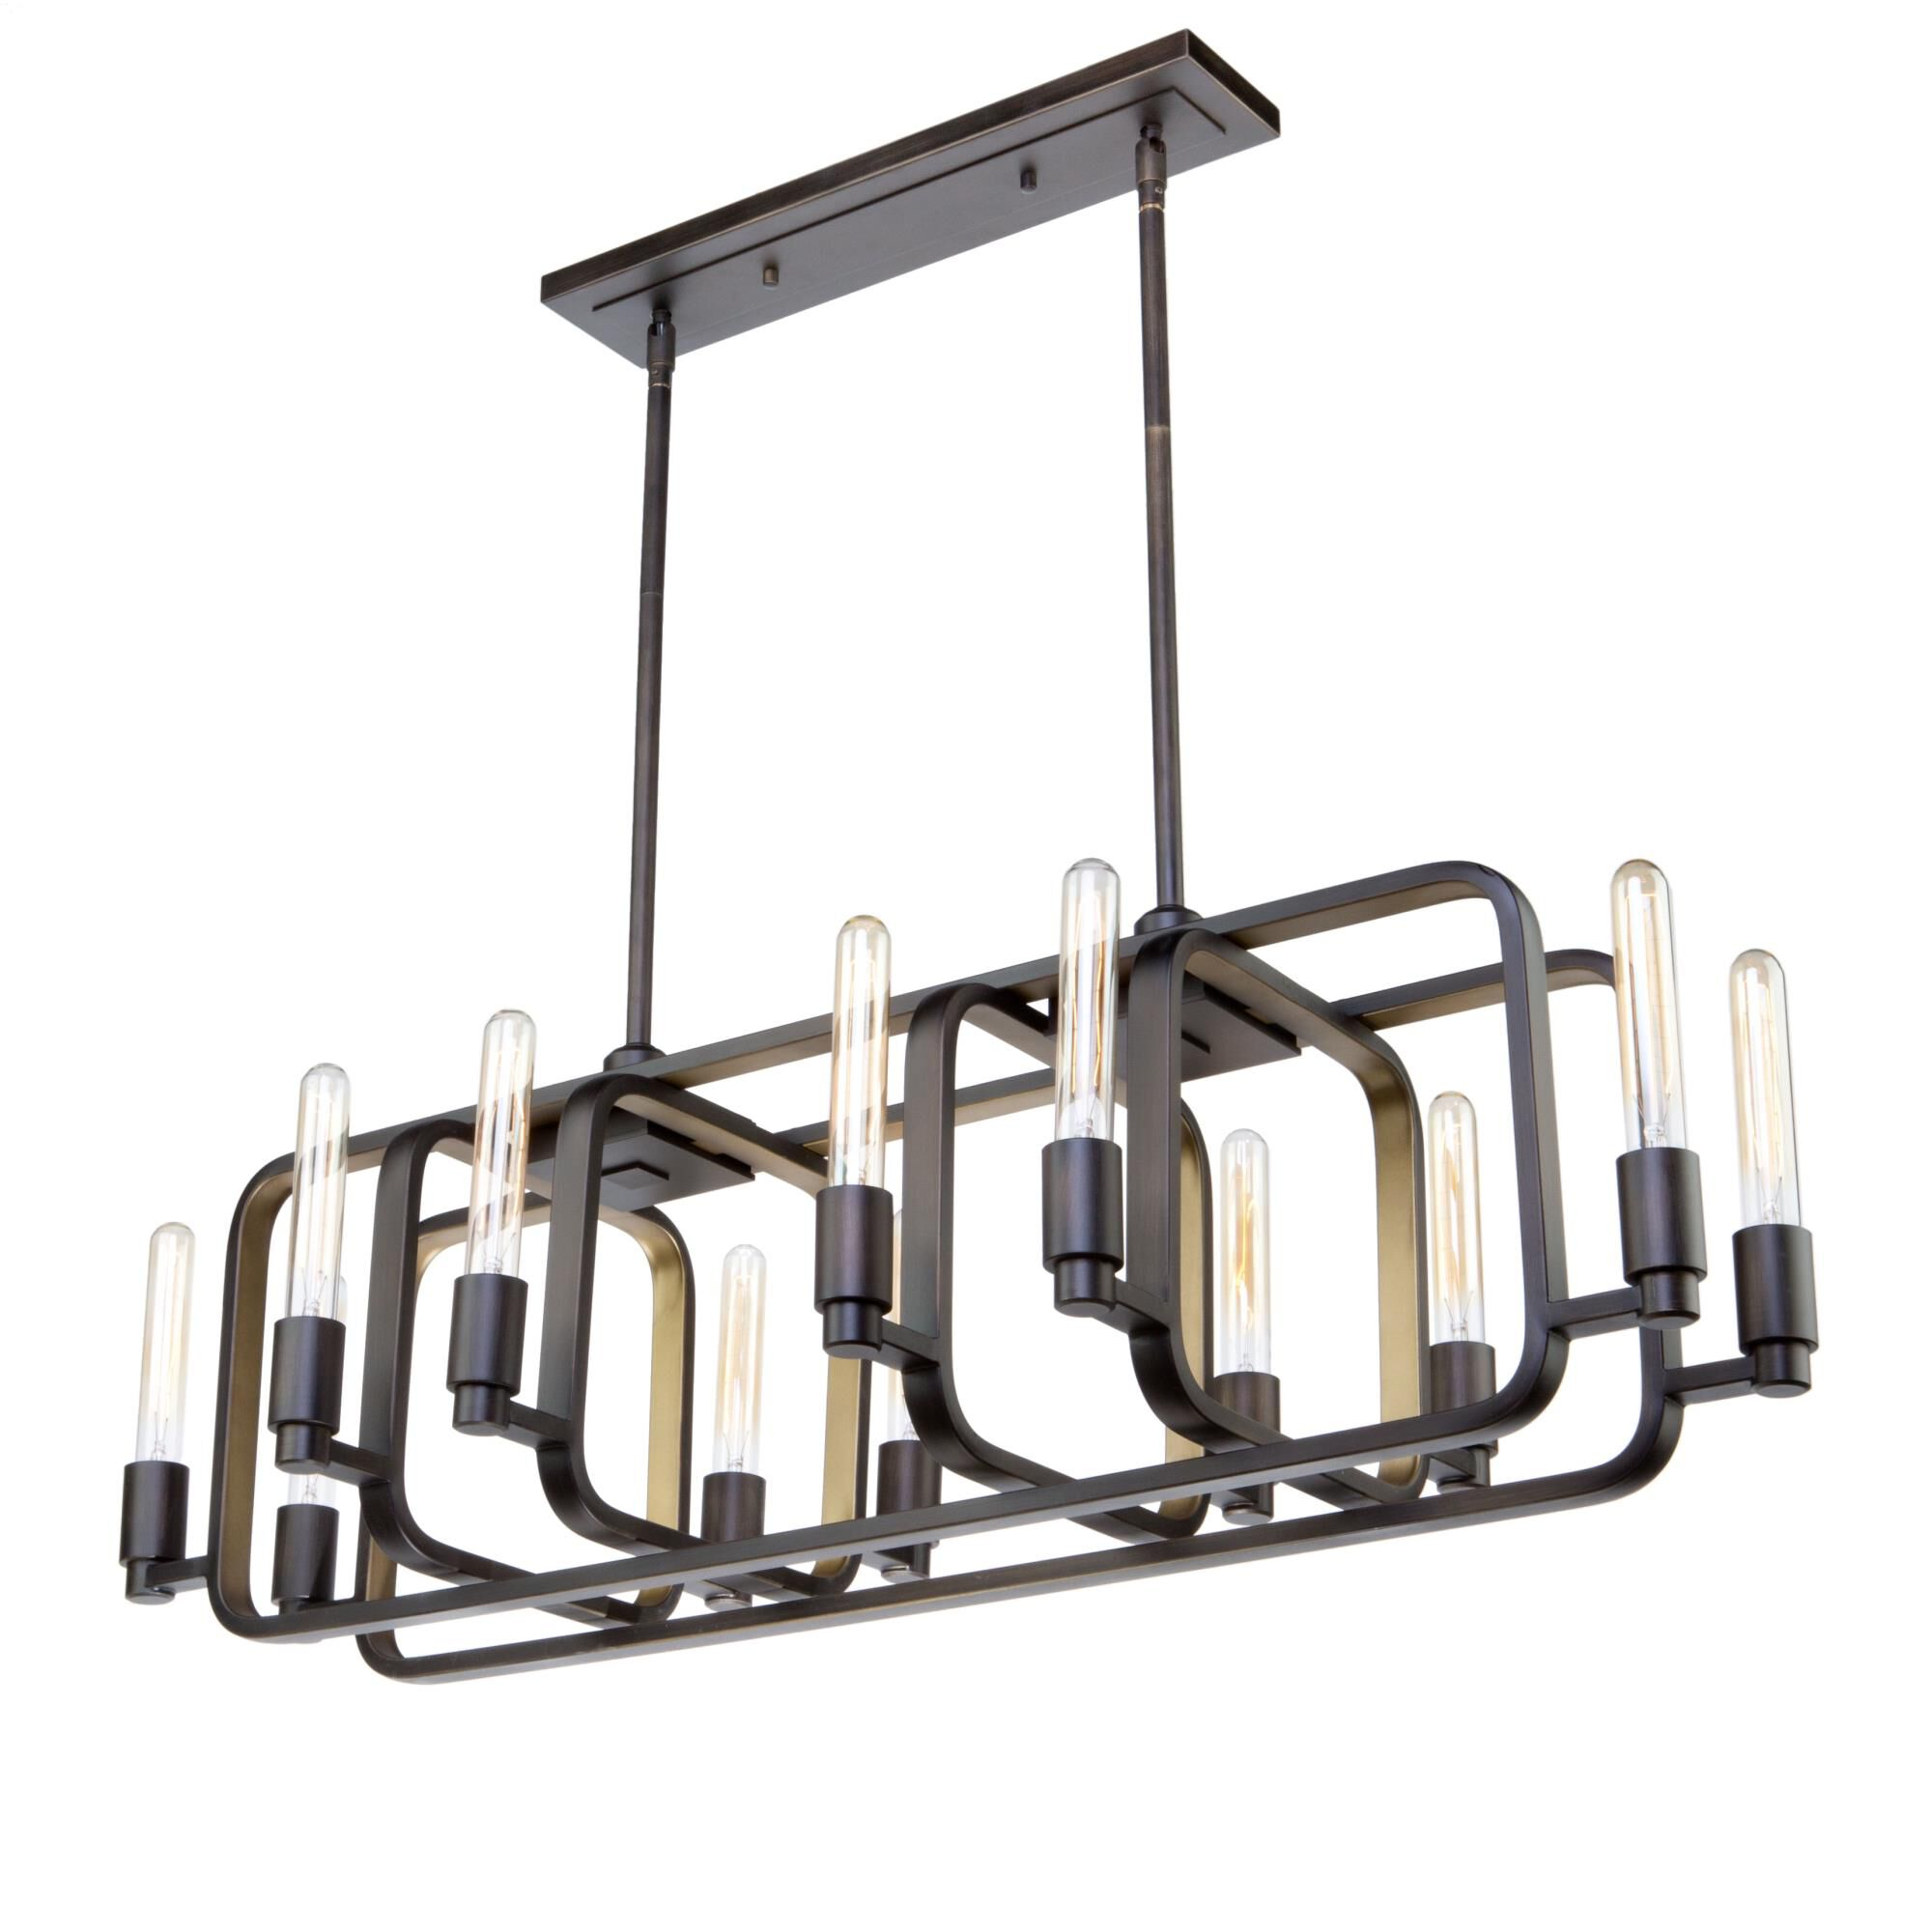 Artcraft Marlborough 41 Inch 12 Light Linear Suspension Light Marlborough - Ac11081 - Art Deco Linear Suspension Light